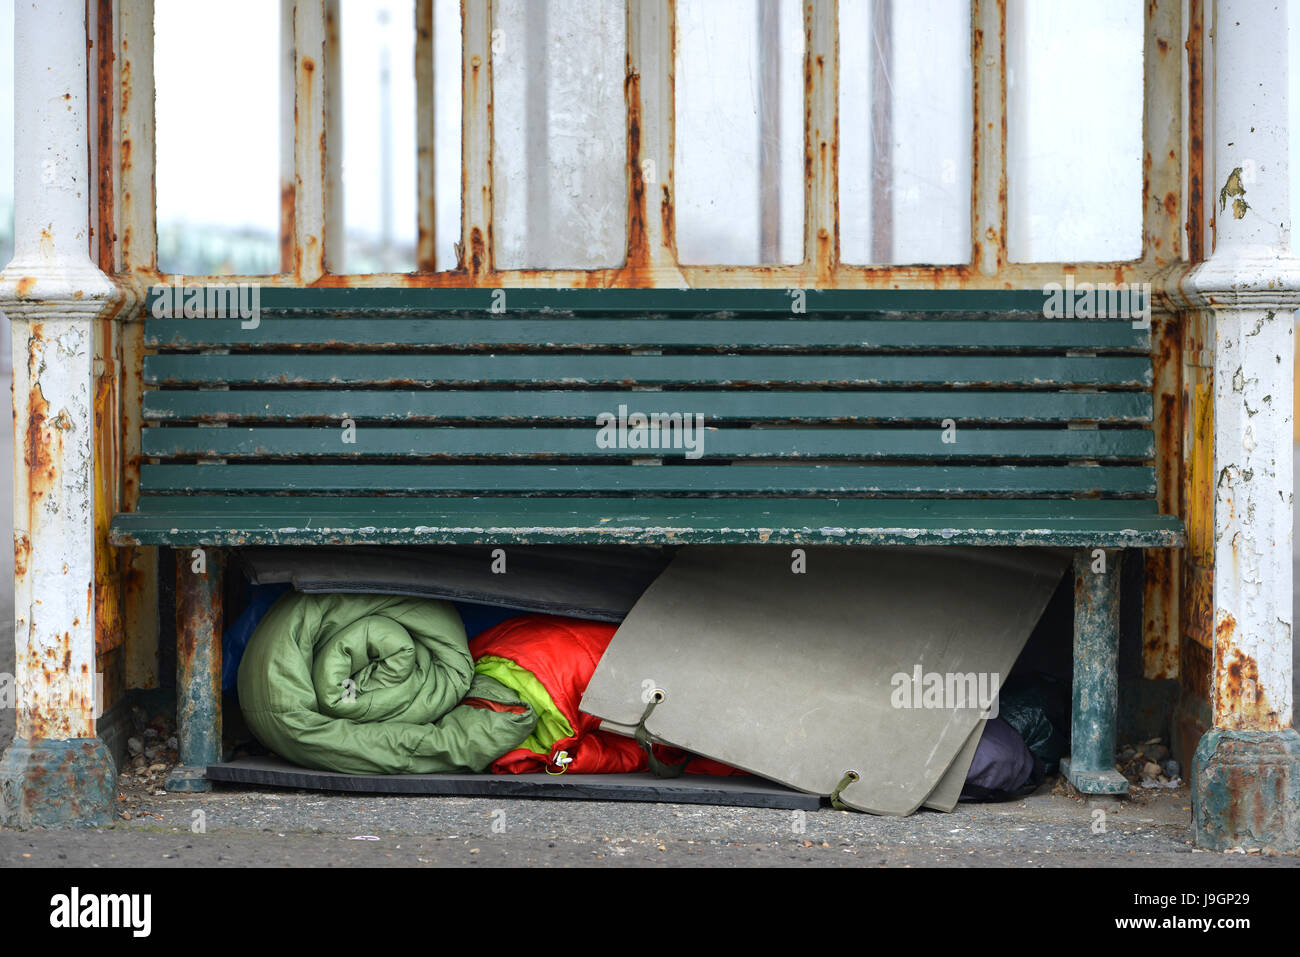 Homelessness. Homeless person's bedding stored under a bench in a bus stop. - Stock Image